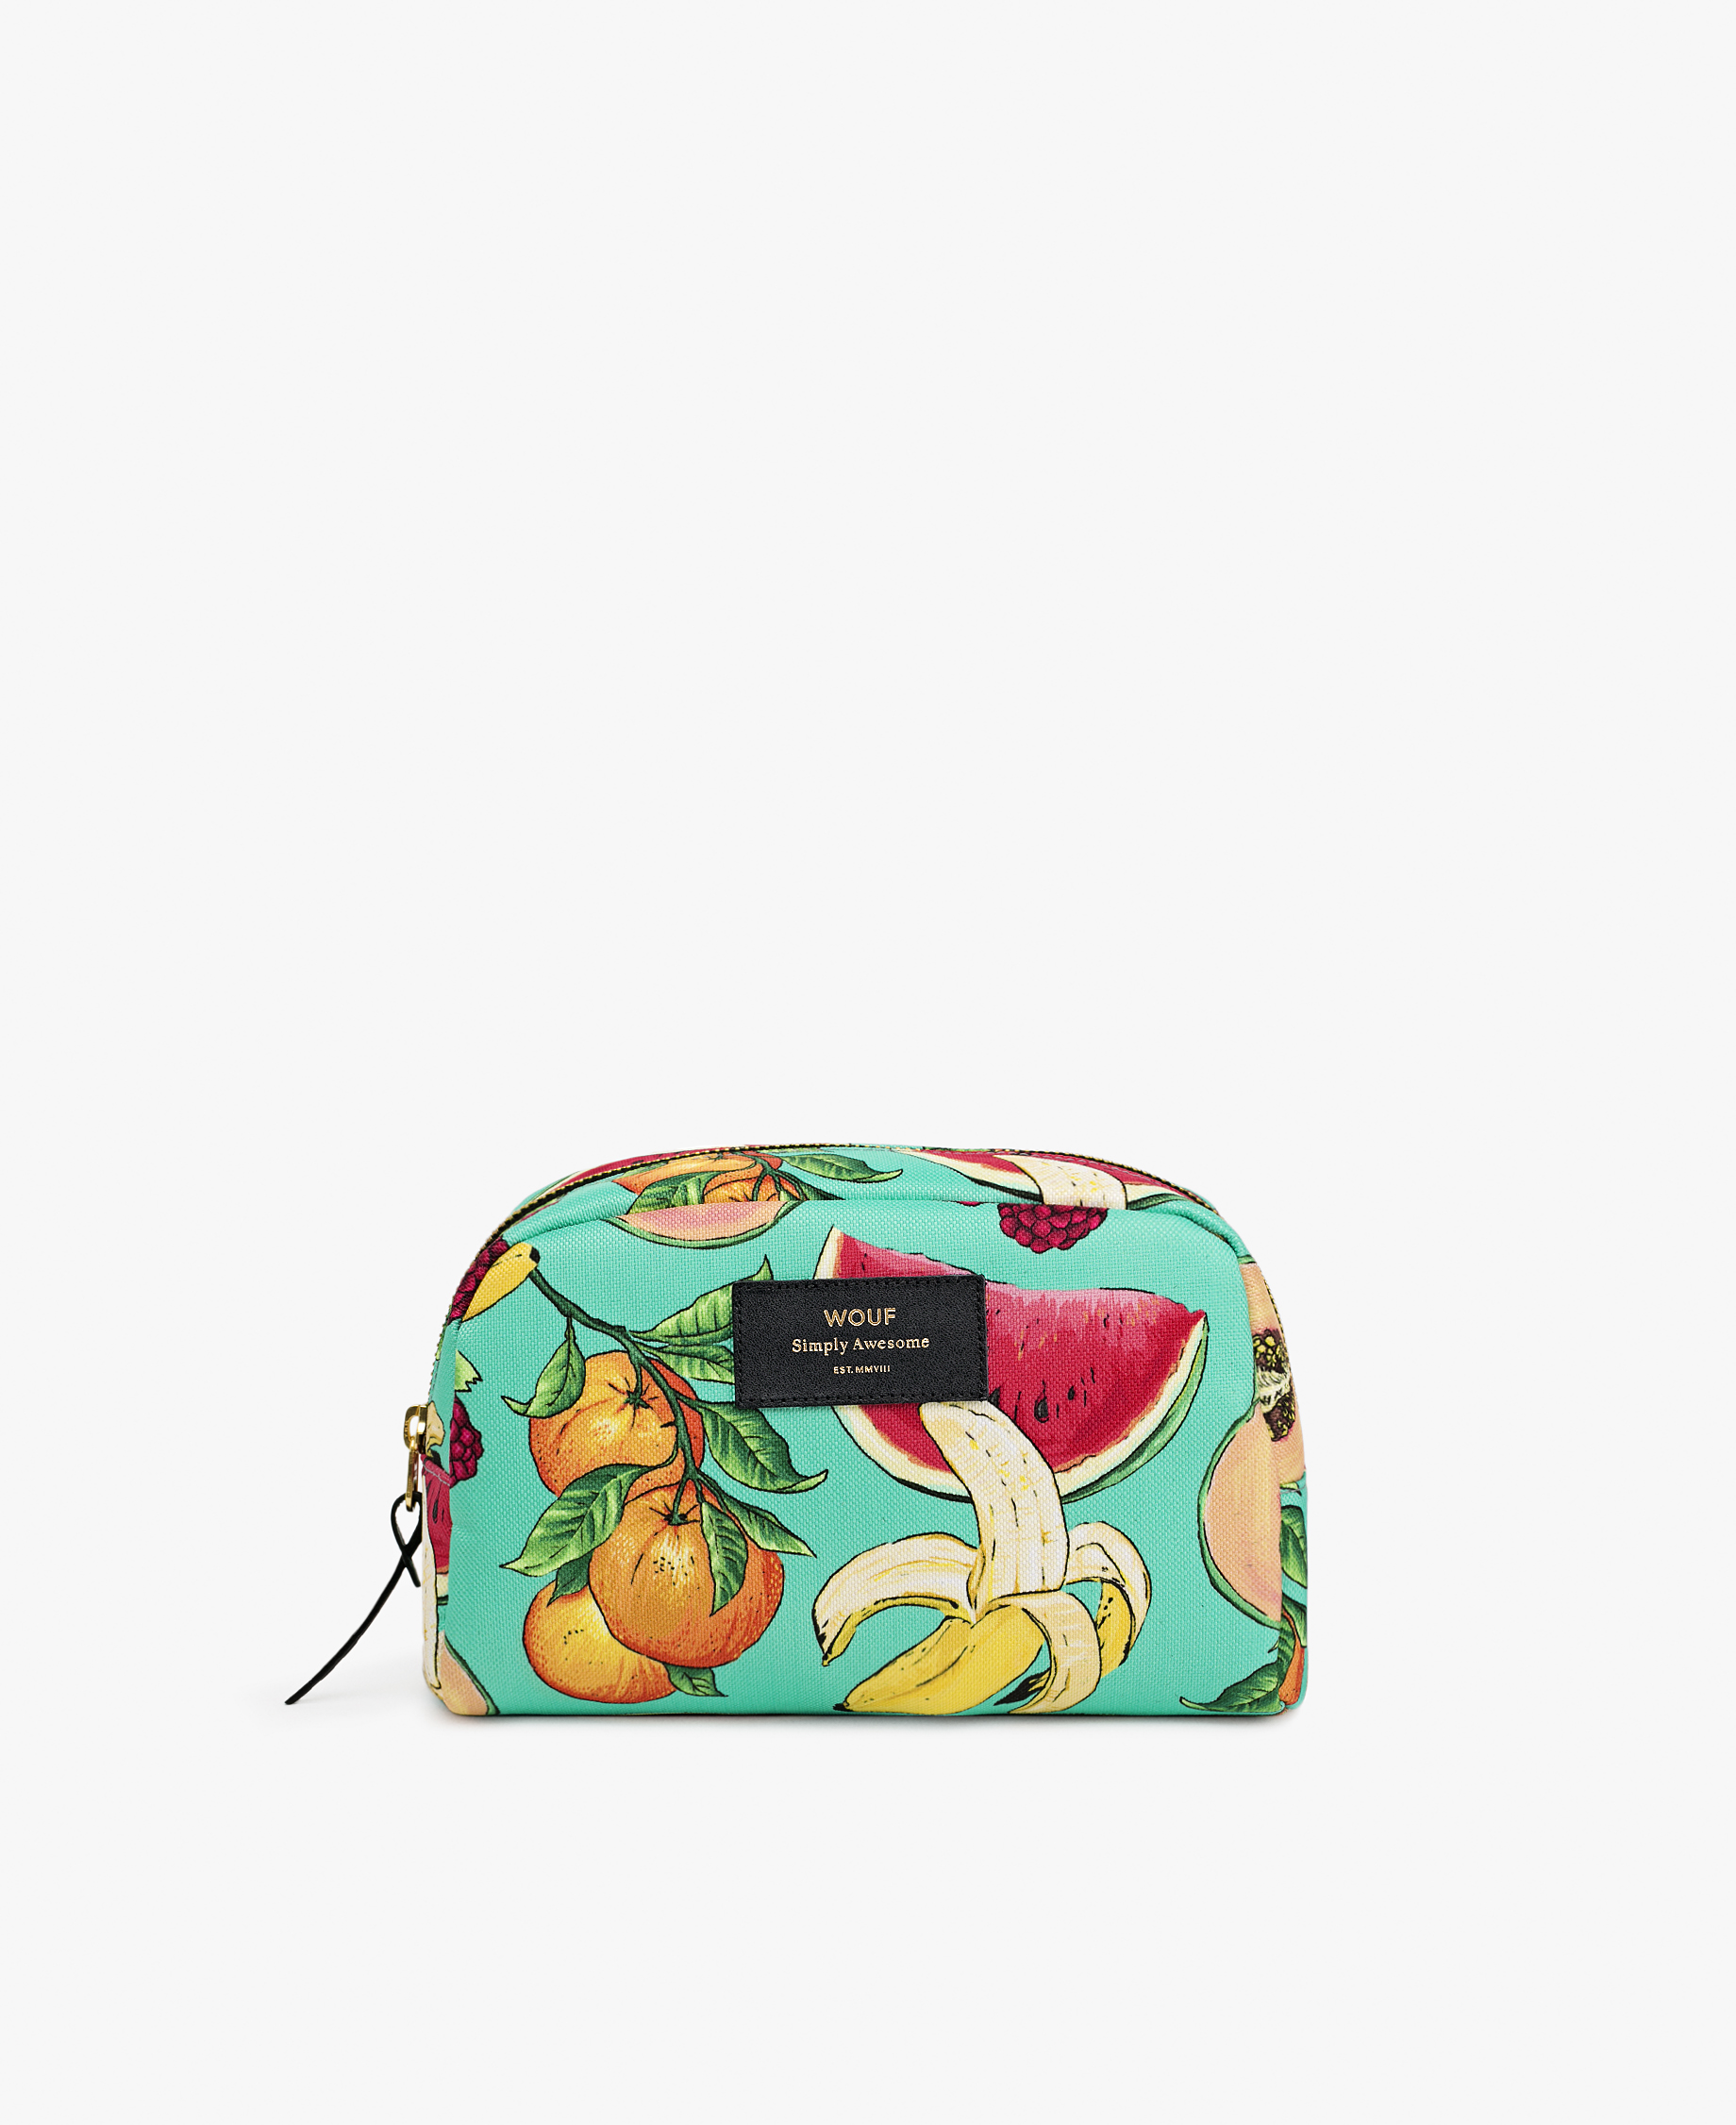 big toiletrybag designed with fruits